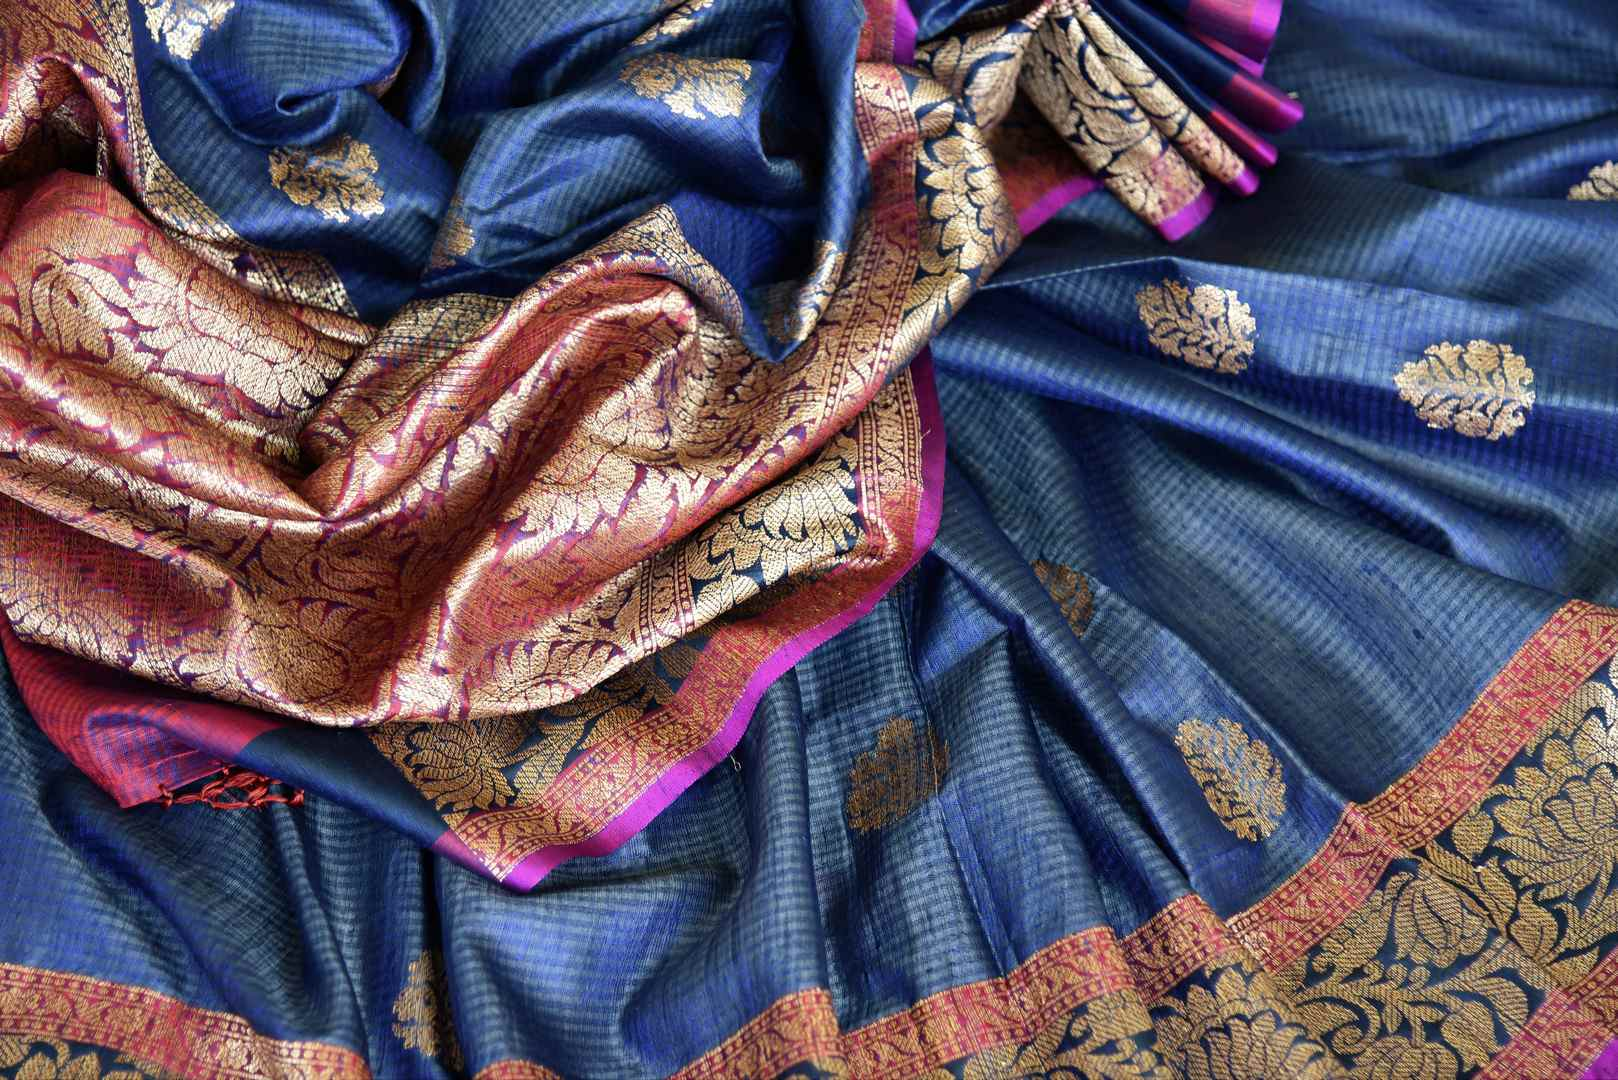 Swing in the gorgeous traditional royal blue tussar banarsi silk sari. It comes with a designer zari border and a contrasting pink designer blouse to steal the show. The buta work all over the sari exudes flamboyance of a kind. Shop designer silk sari, printed saree online or visit Pure Elegance store, USA.-details